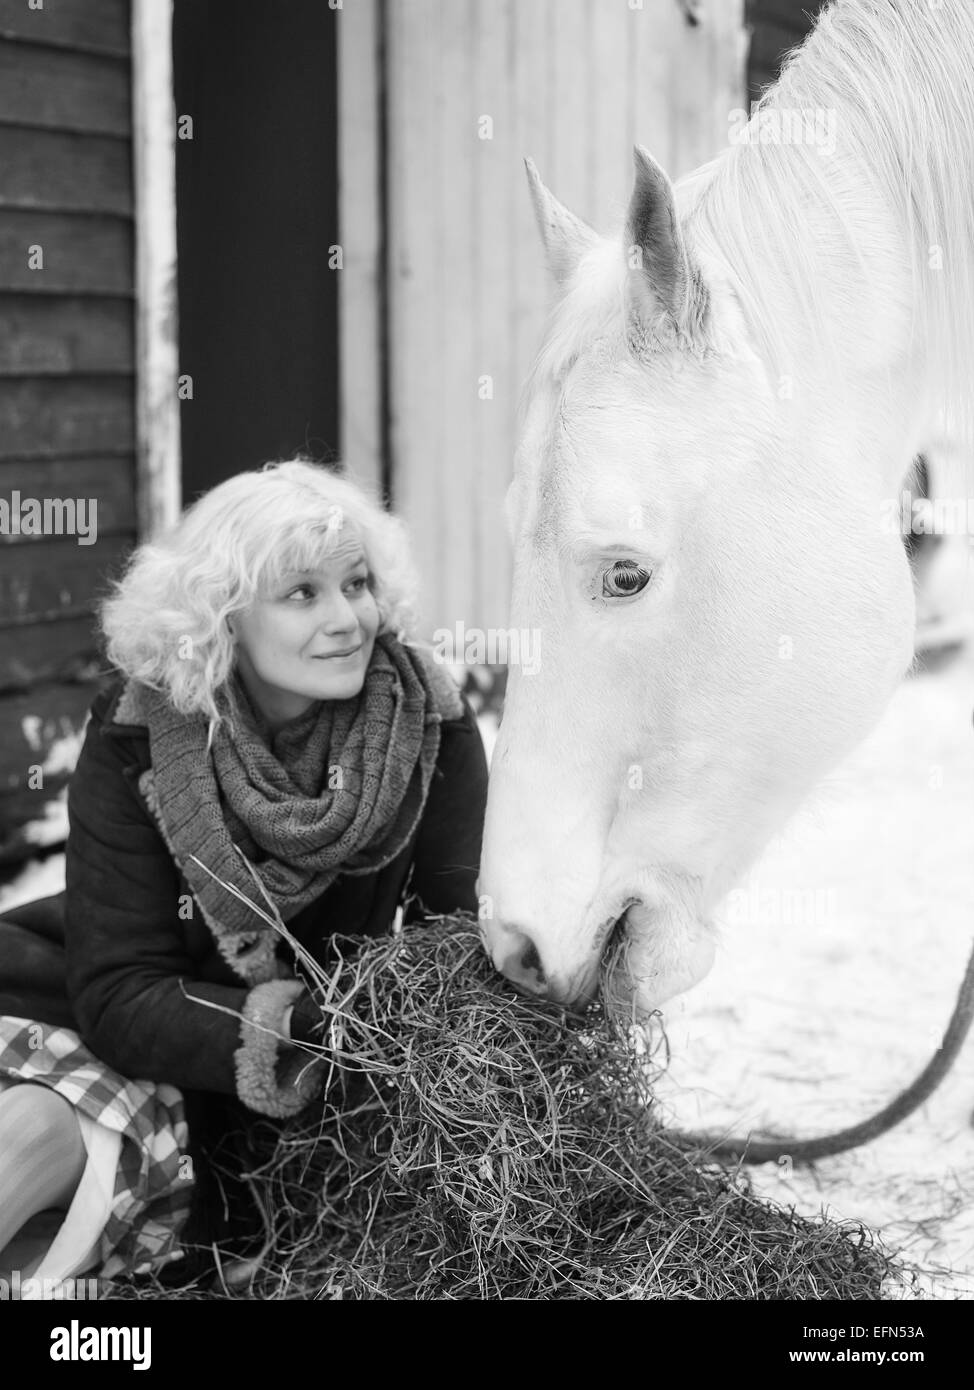 Attractive blond woman feeds a white horse, overcast winter day, black and white image, focus on horse eyes - Stock Image